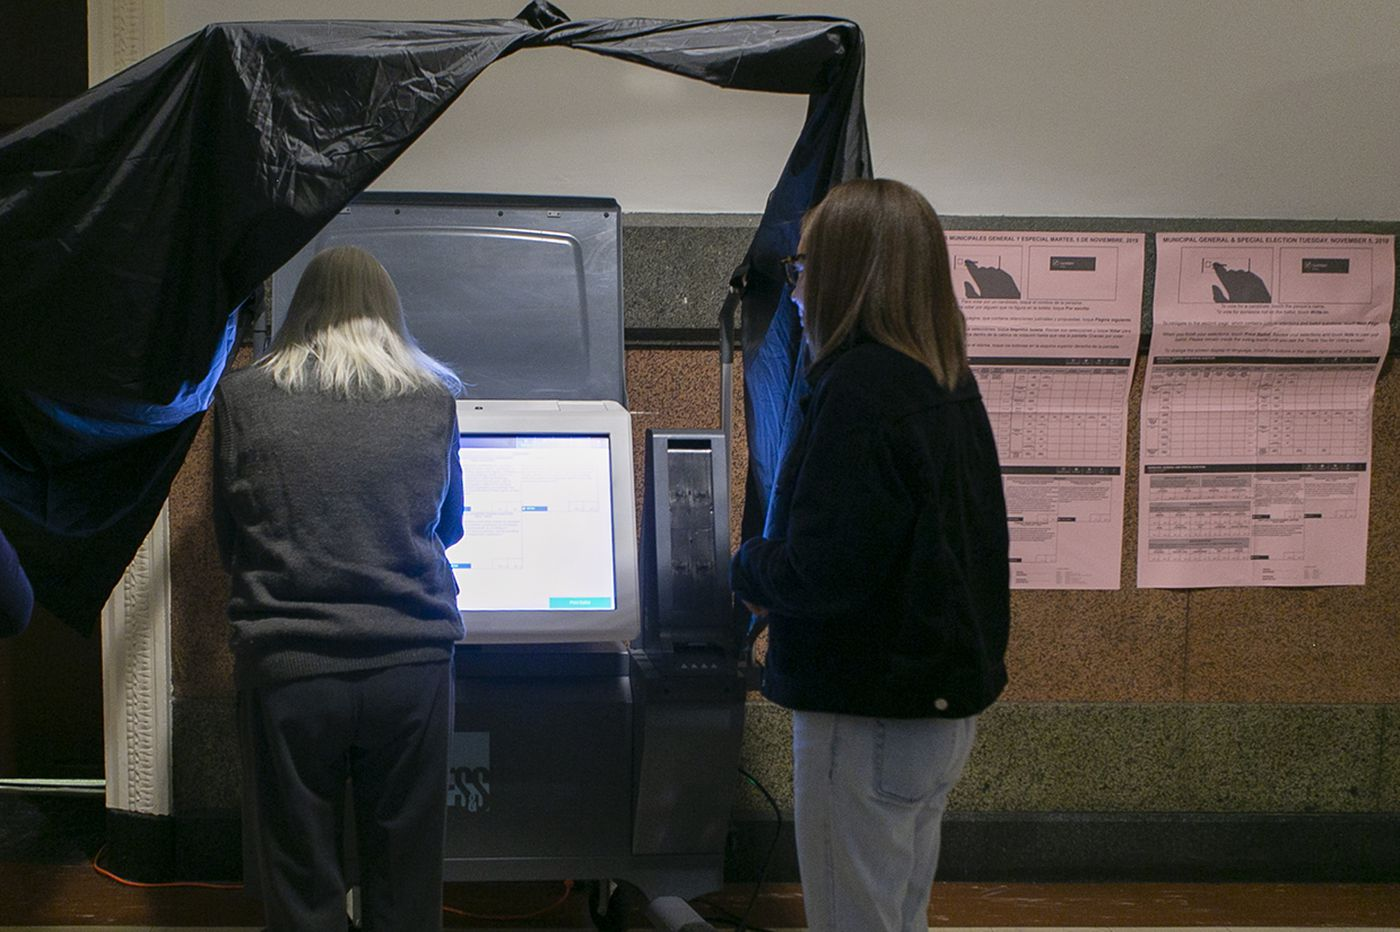 Lawsuit seeks to force Pennsylvania to scrap these electronic voting machines over hacking fears